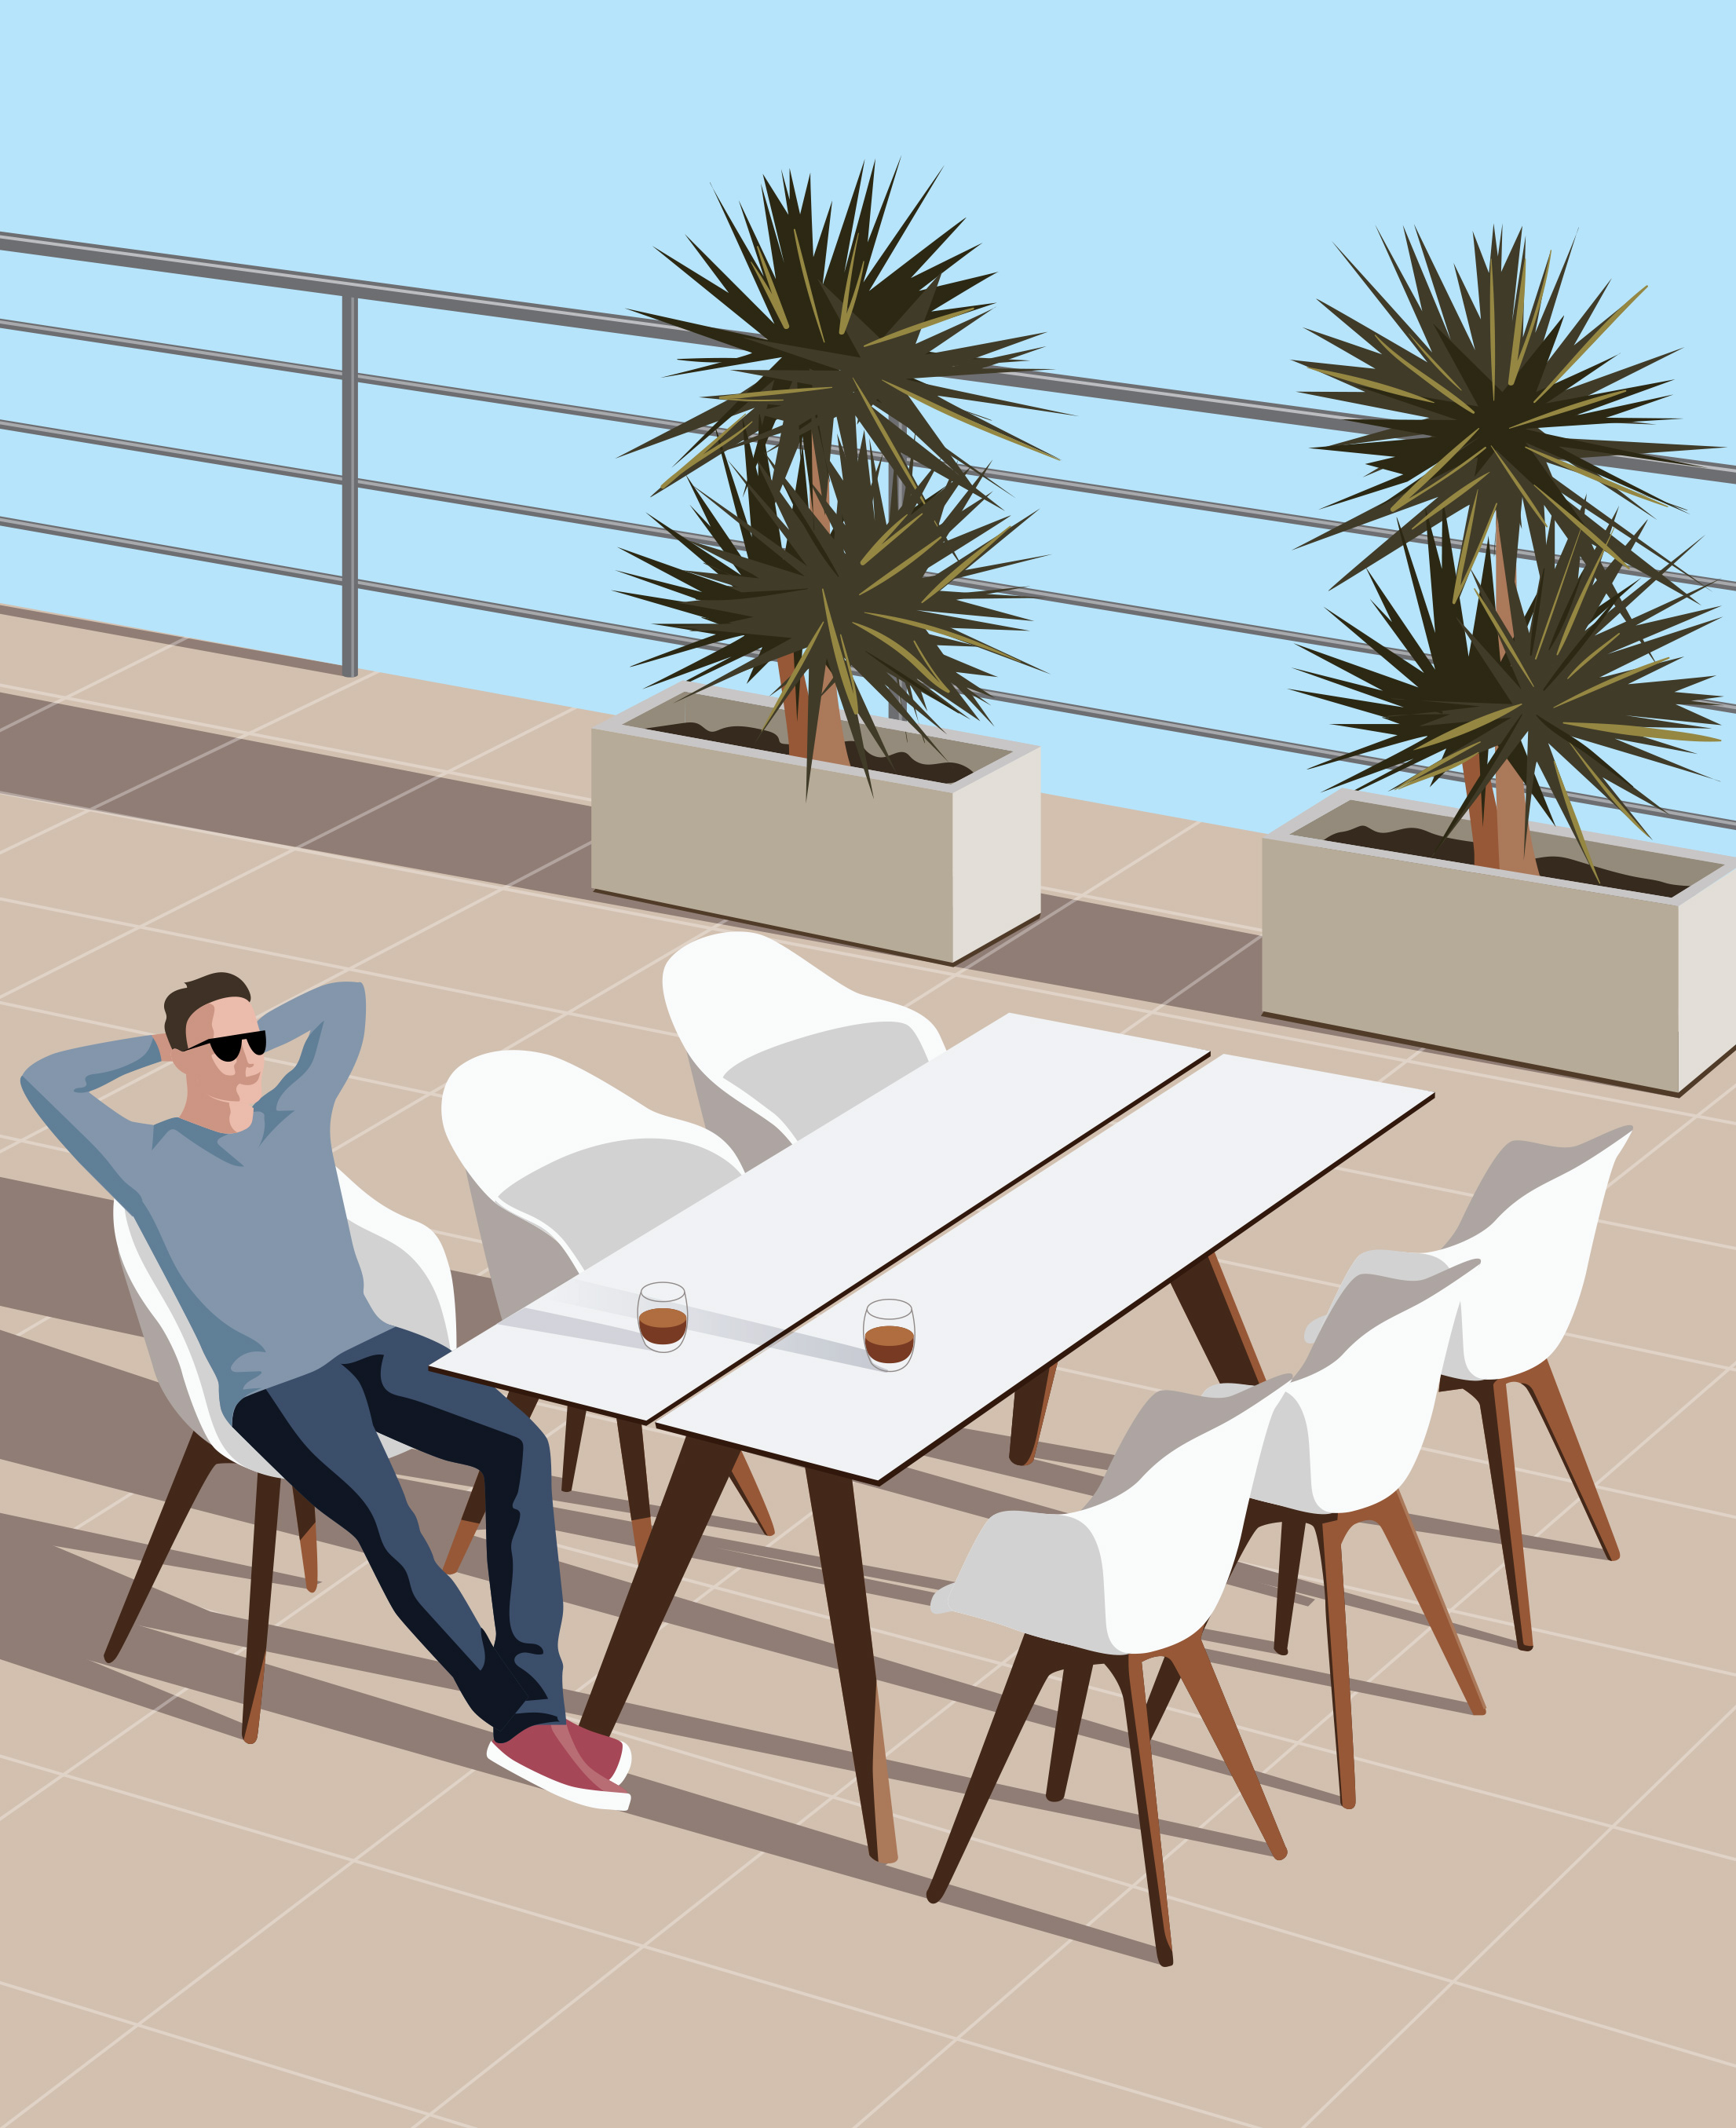 Mona Daly Illustration Outdoor Seating